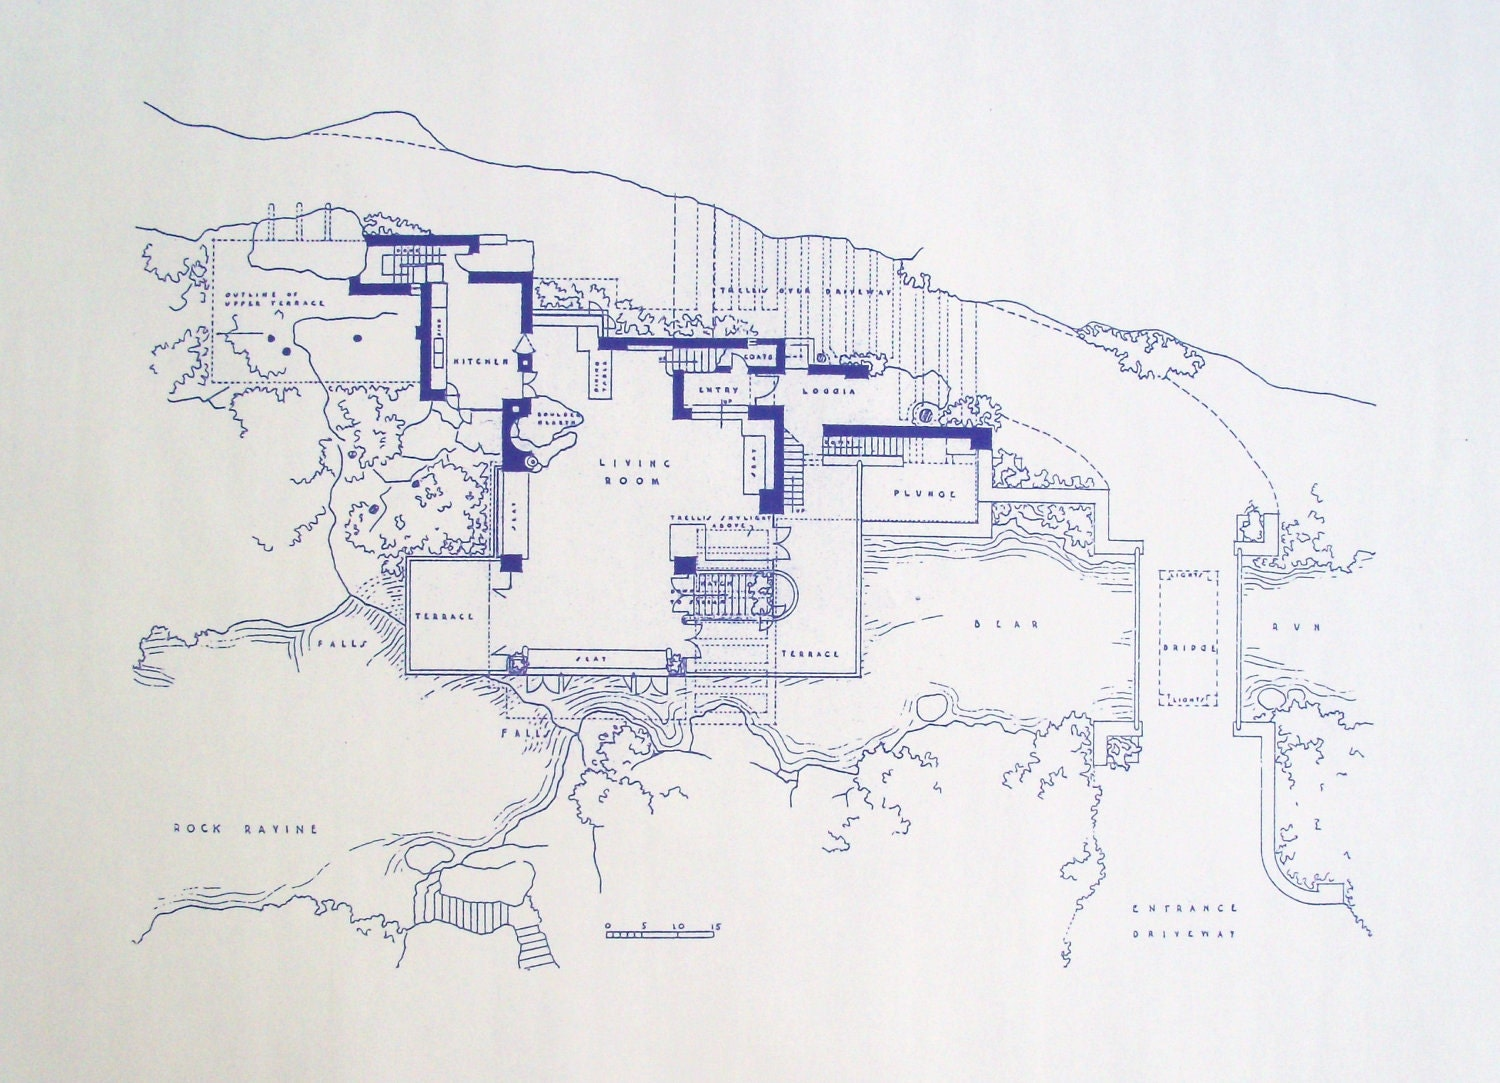 Frank lloyd wright falling water site blueprint by for Blueprints website